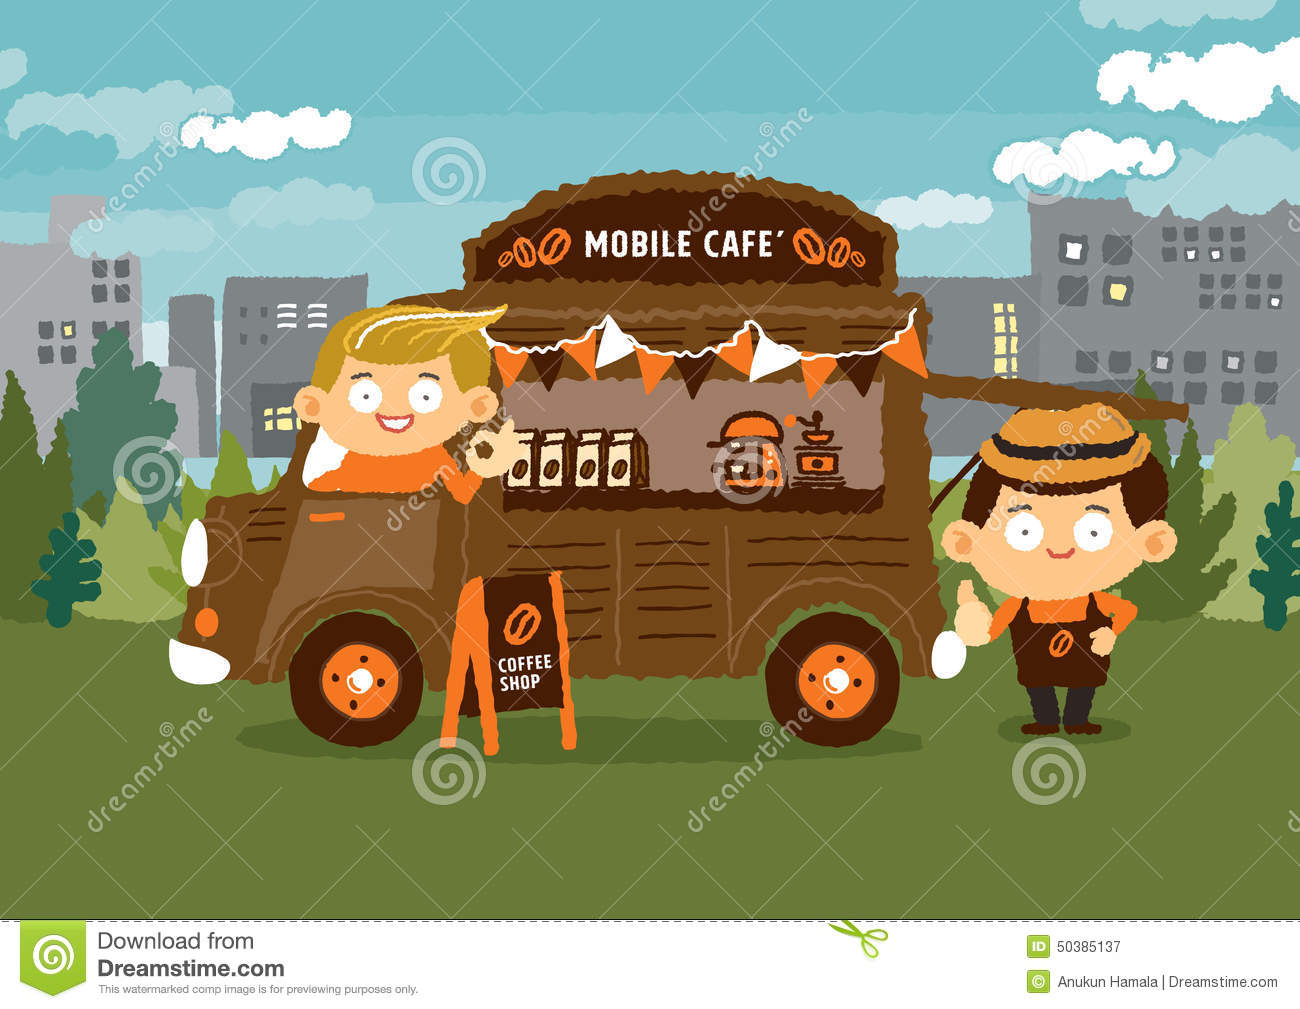 Mobile Coffee Shop Van Cafe Concepts Stock Vector Illustration Of Banner Retro 50385137